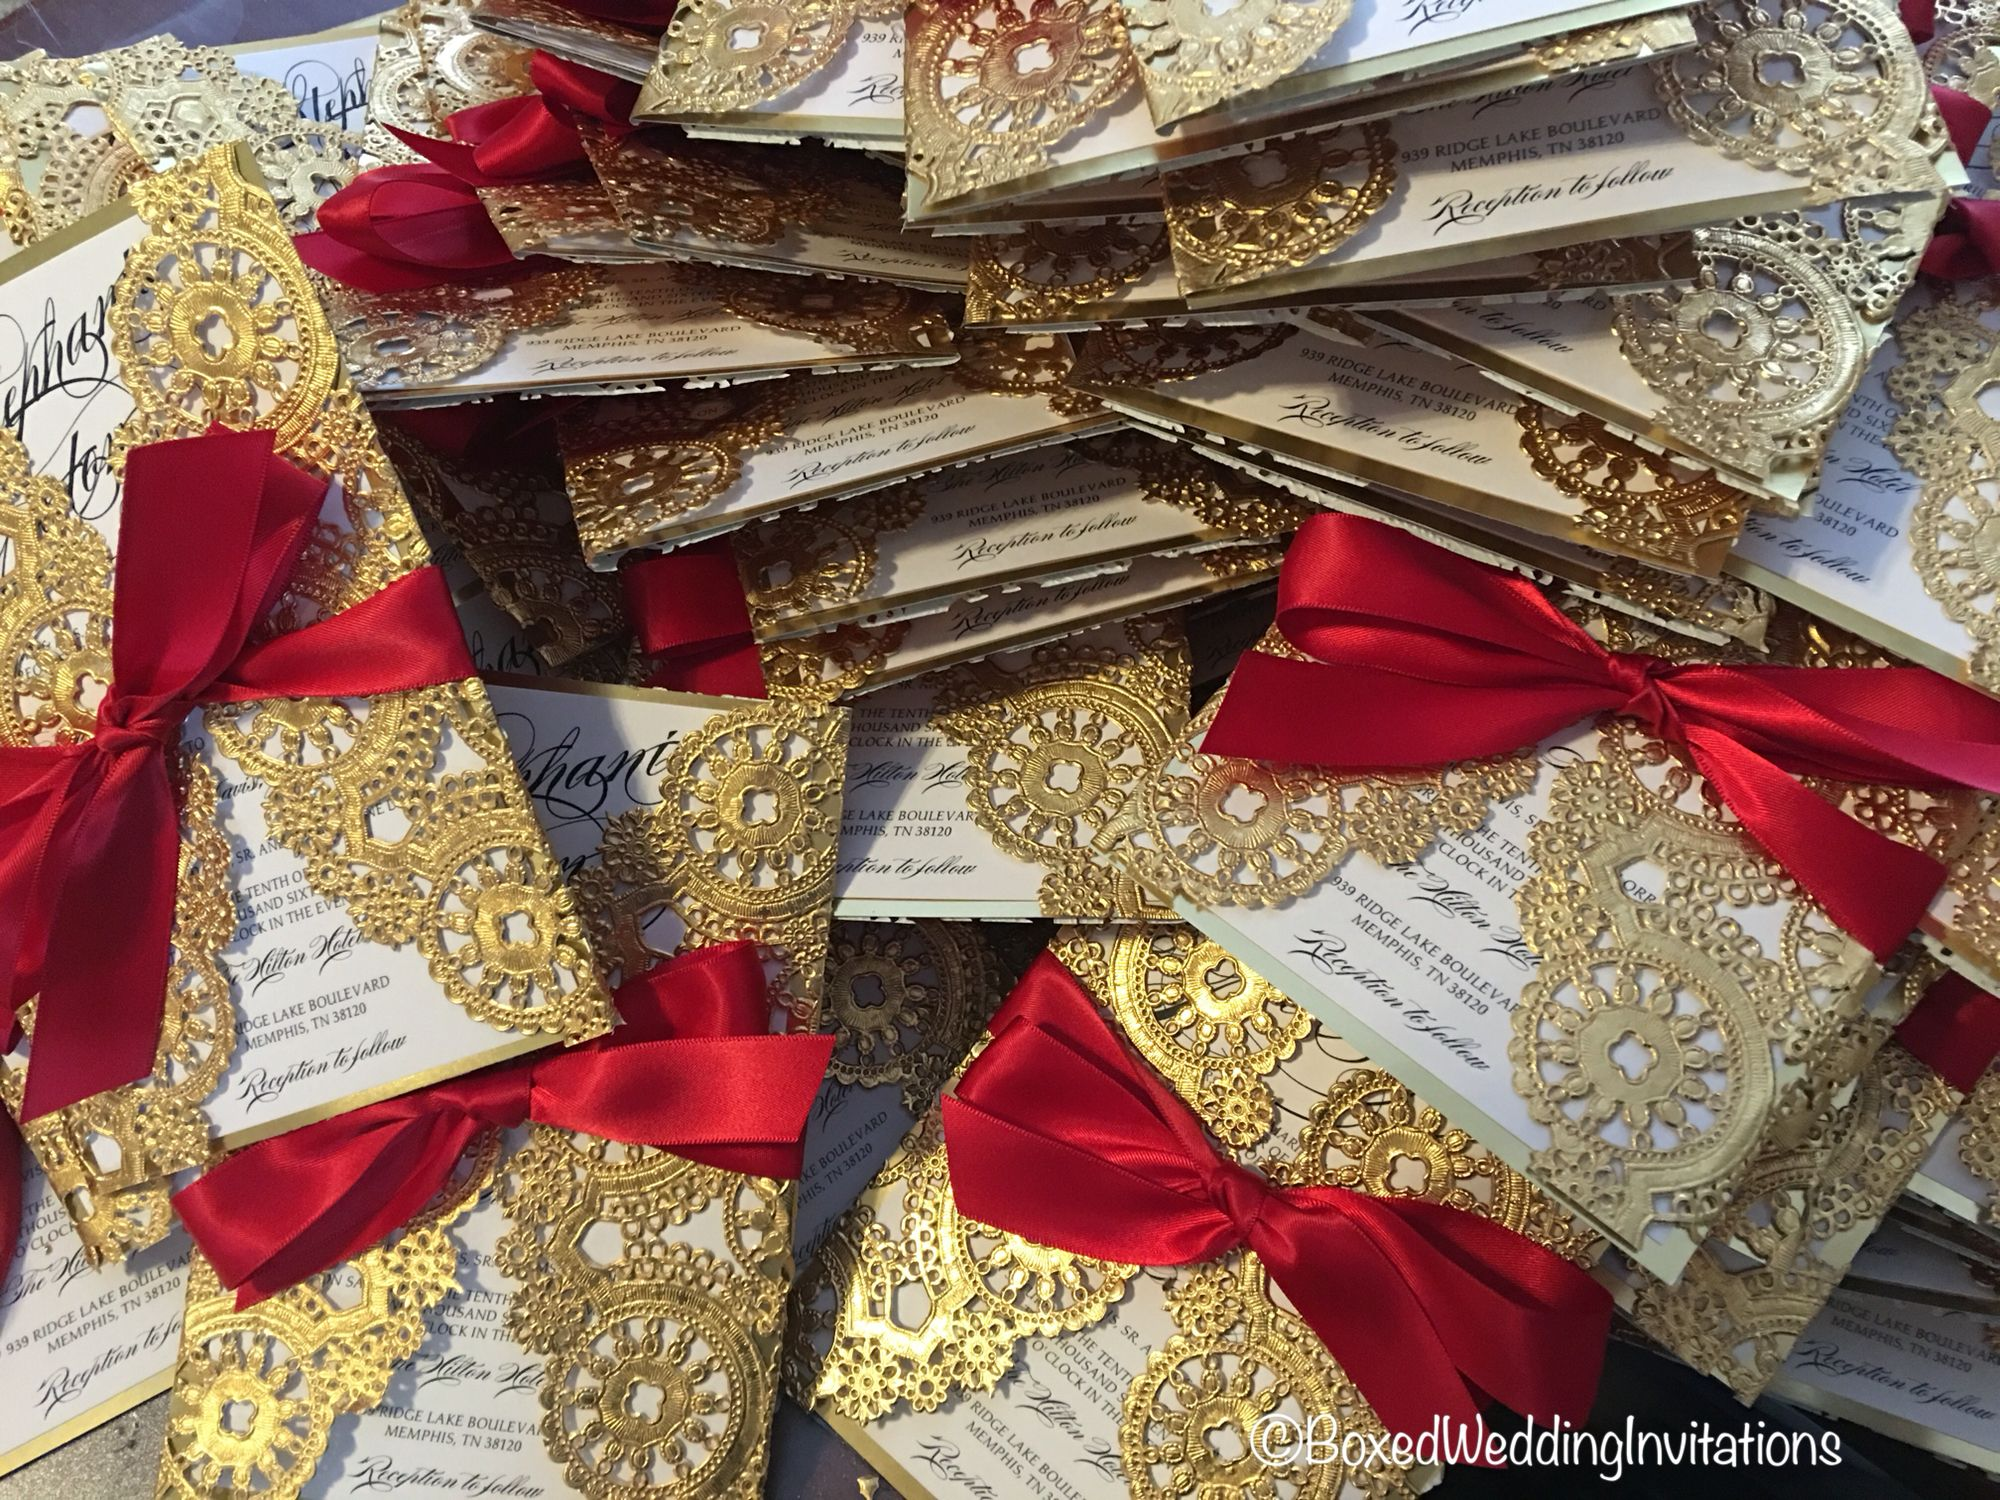 Lasercut wedding invitations. Love the red and gold combination ...